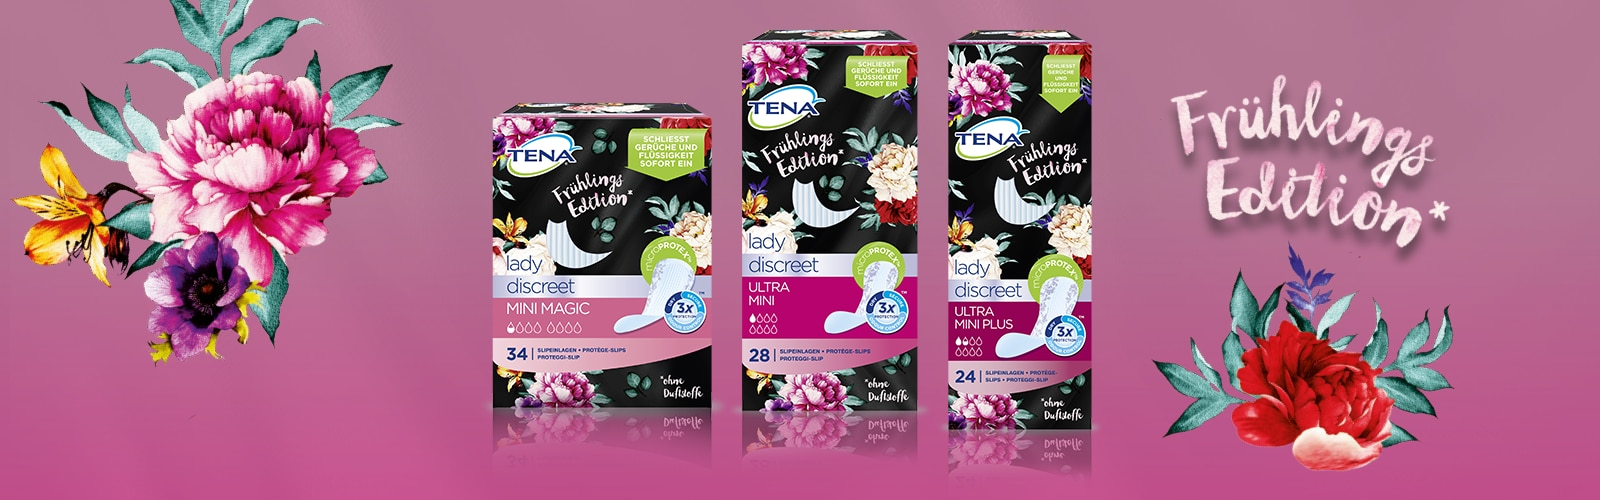 TENA Lady Discreet Frühlings Edition